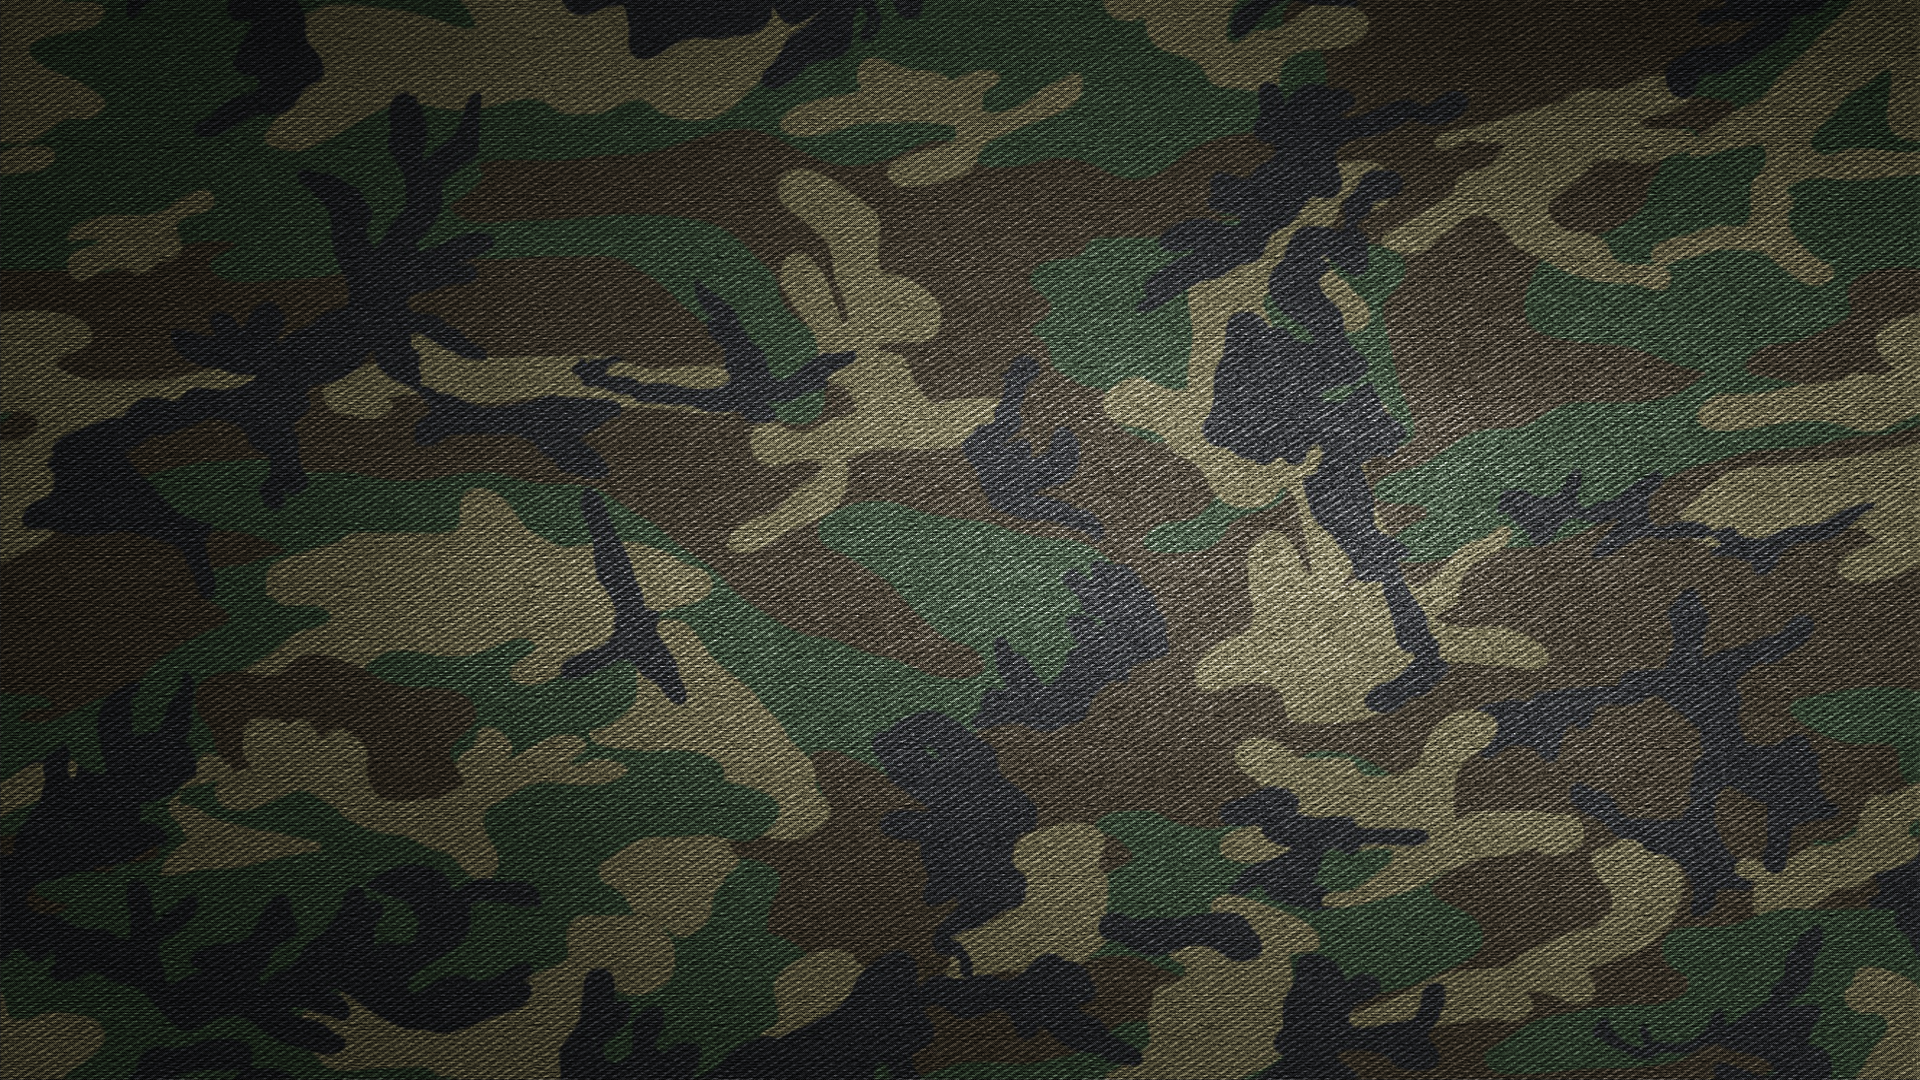 Army Love Wallpaper Hd : camouflage wallpaper hd army military - HD Desktop Wallpapers 4k HD